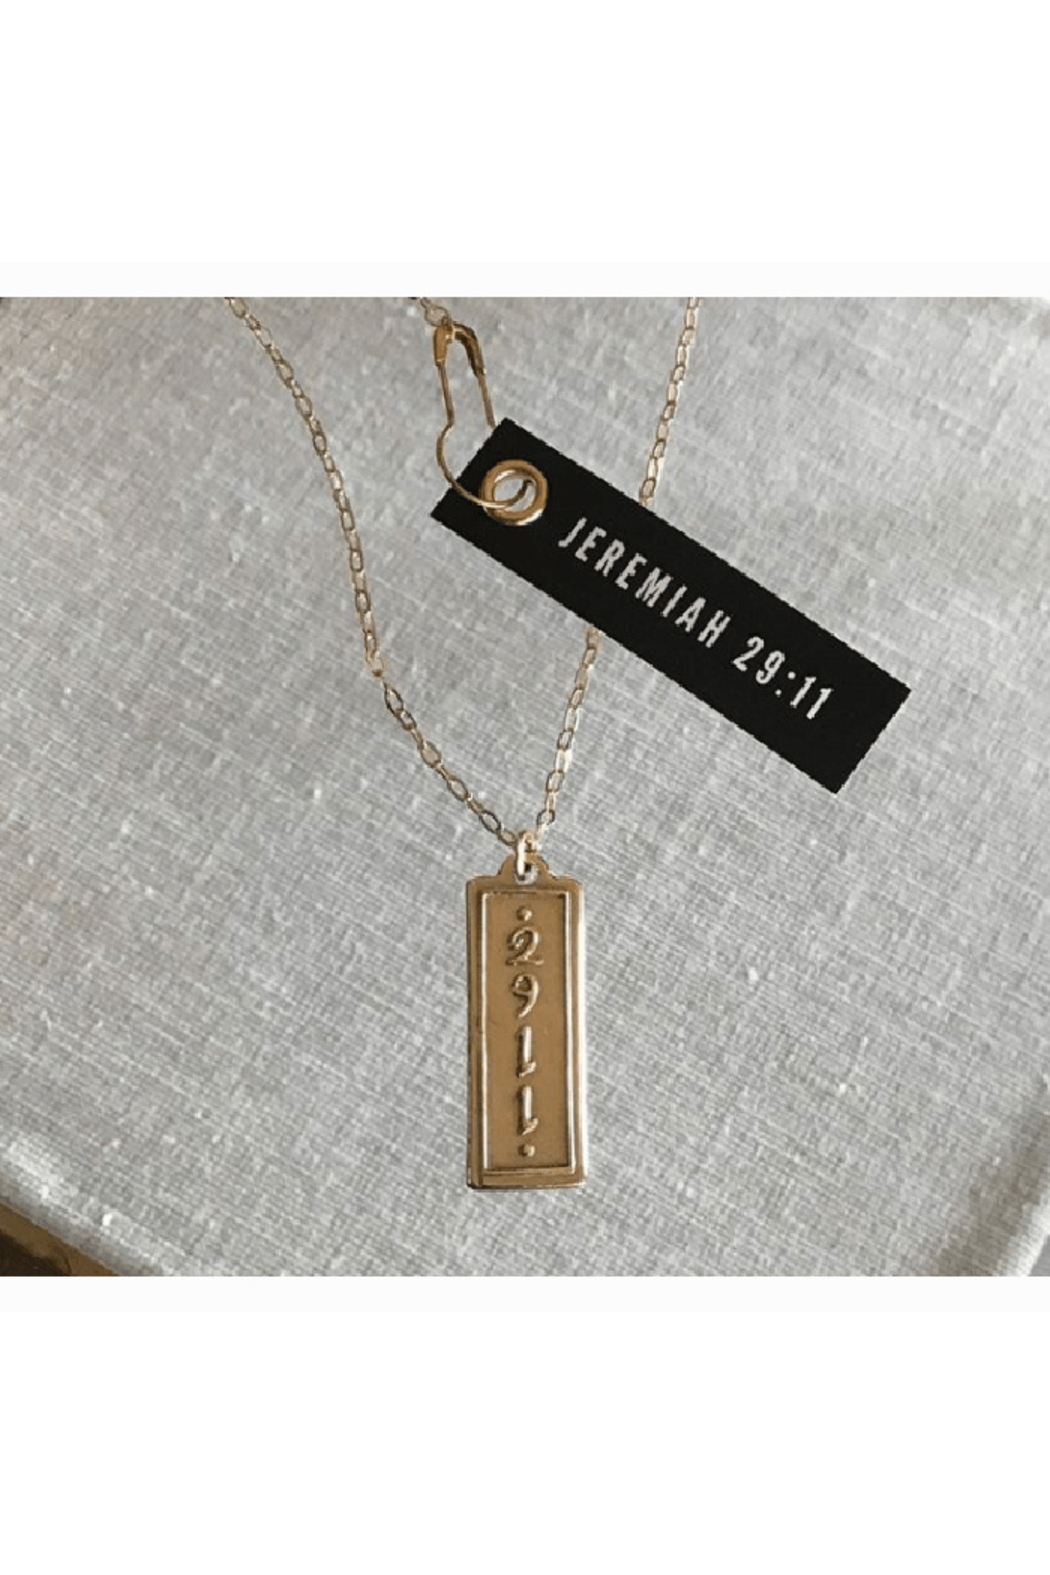 MADISON STERLING JEWELRY JEREMIAH 29:11 PENDANT NECKLACE - Front Cropped Image